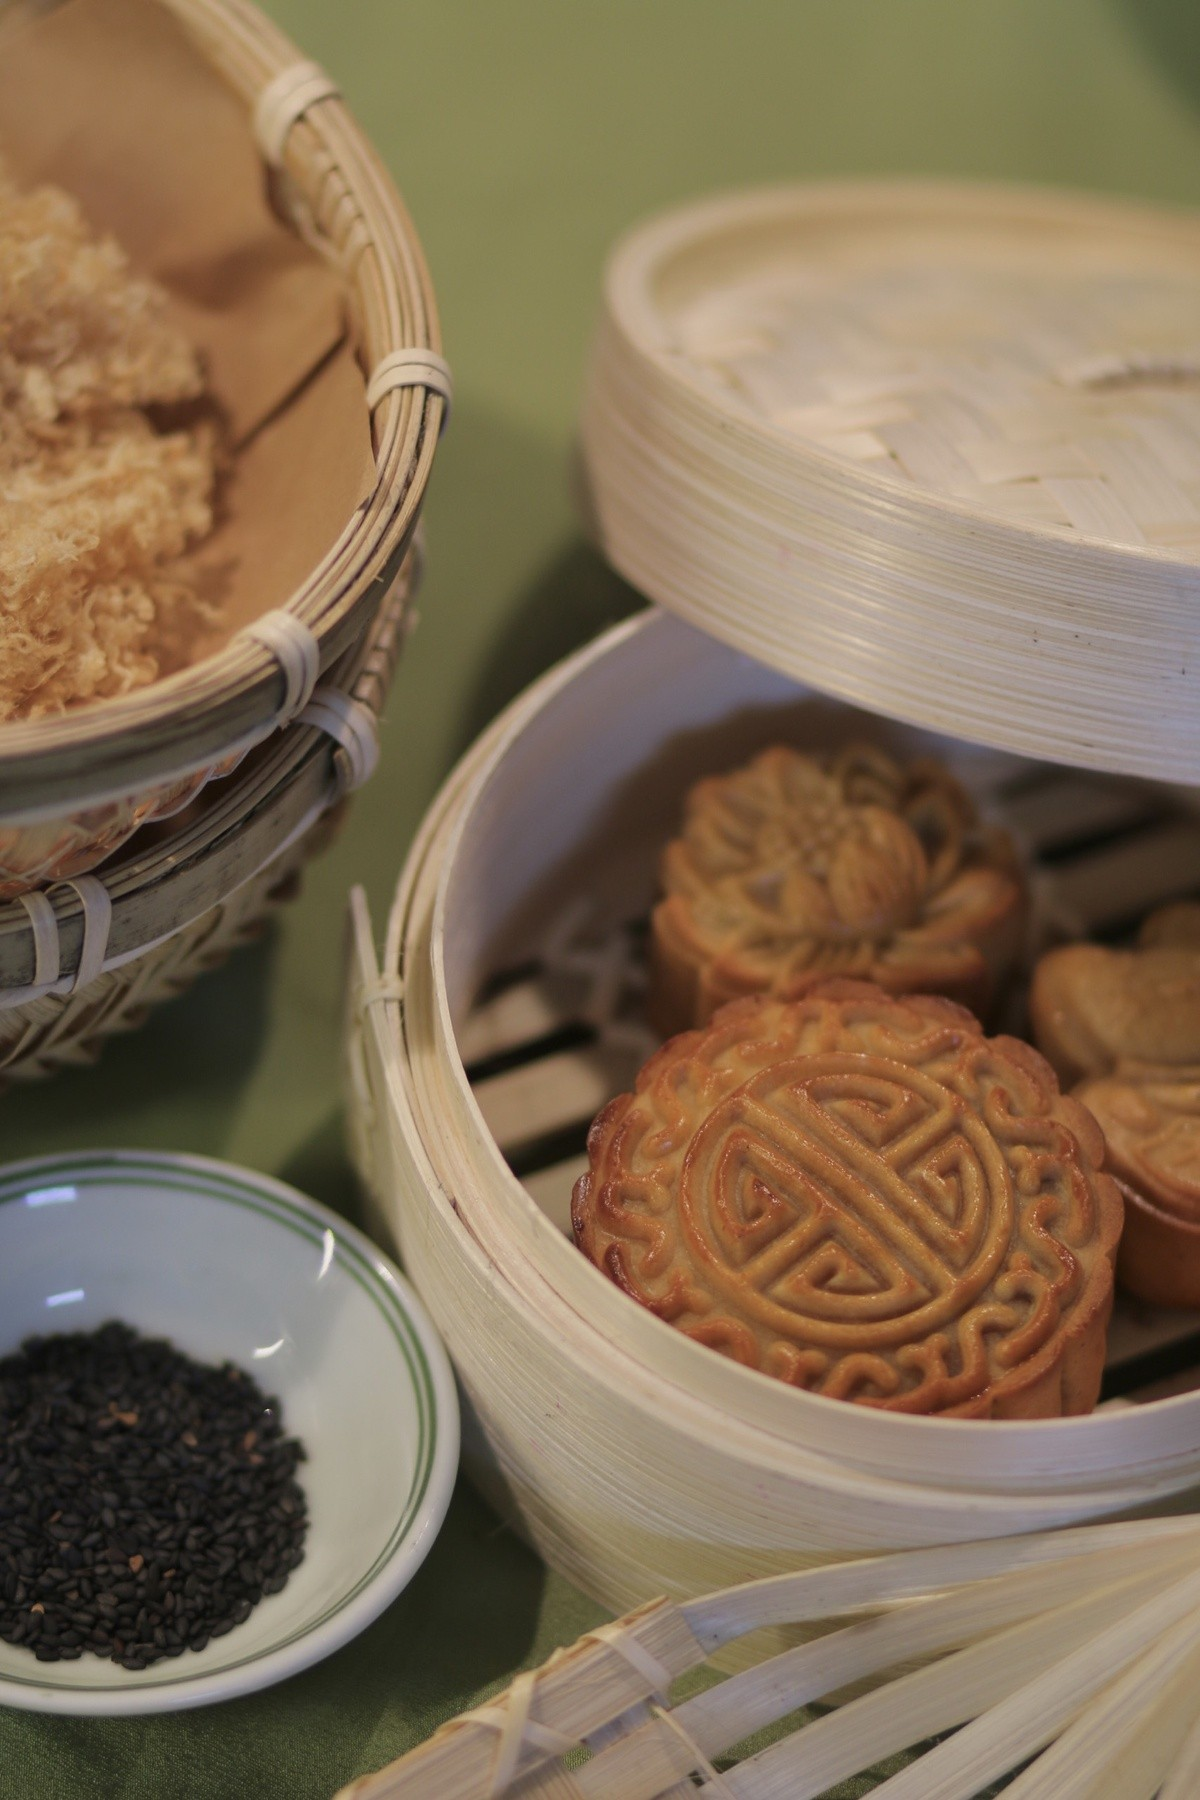 Vietnamese Youngsters Bake Mooncakes during Social Distancing